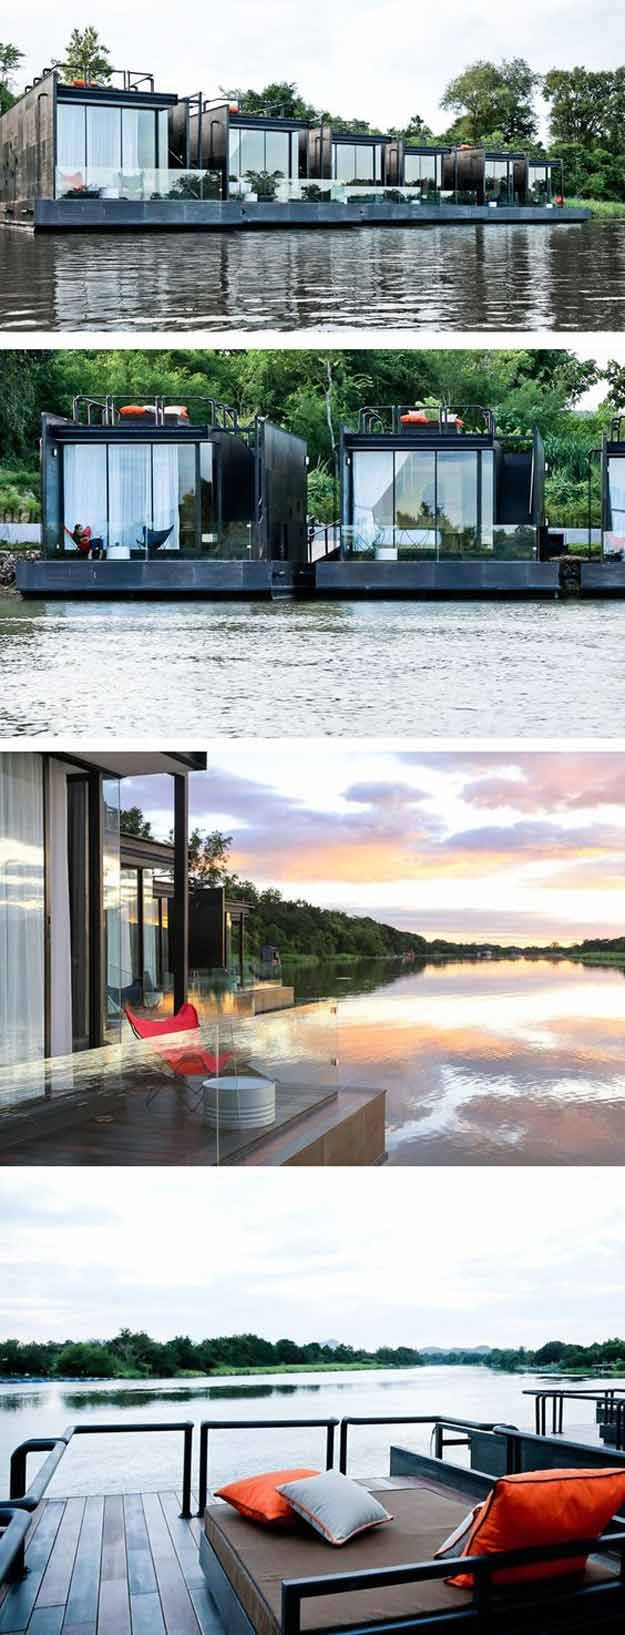 Floating Holiday Homes |12 Cool Container Homes